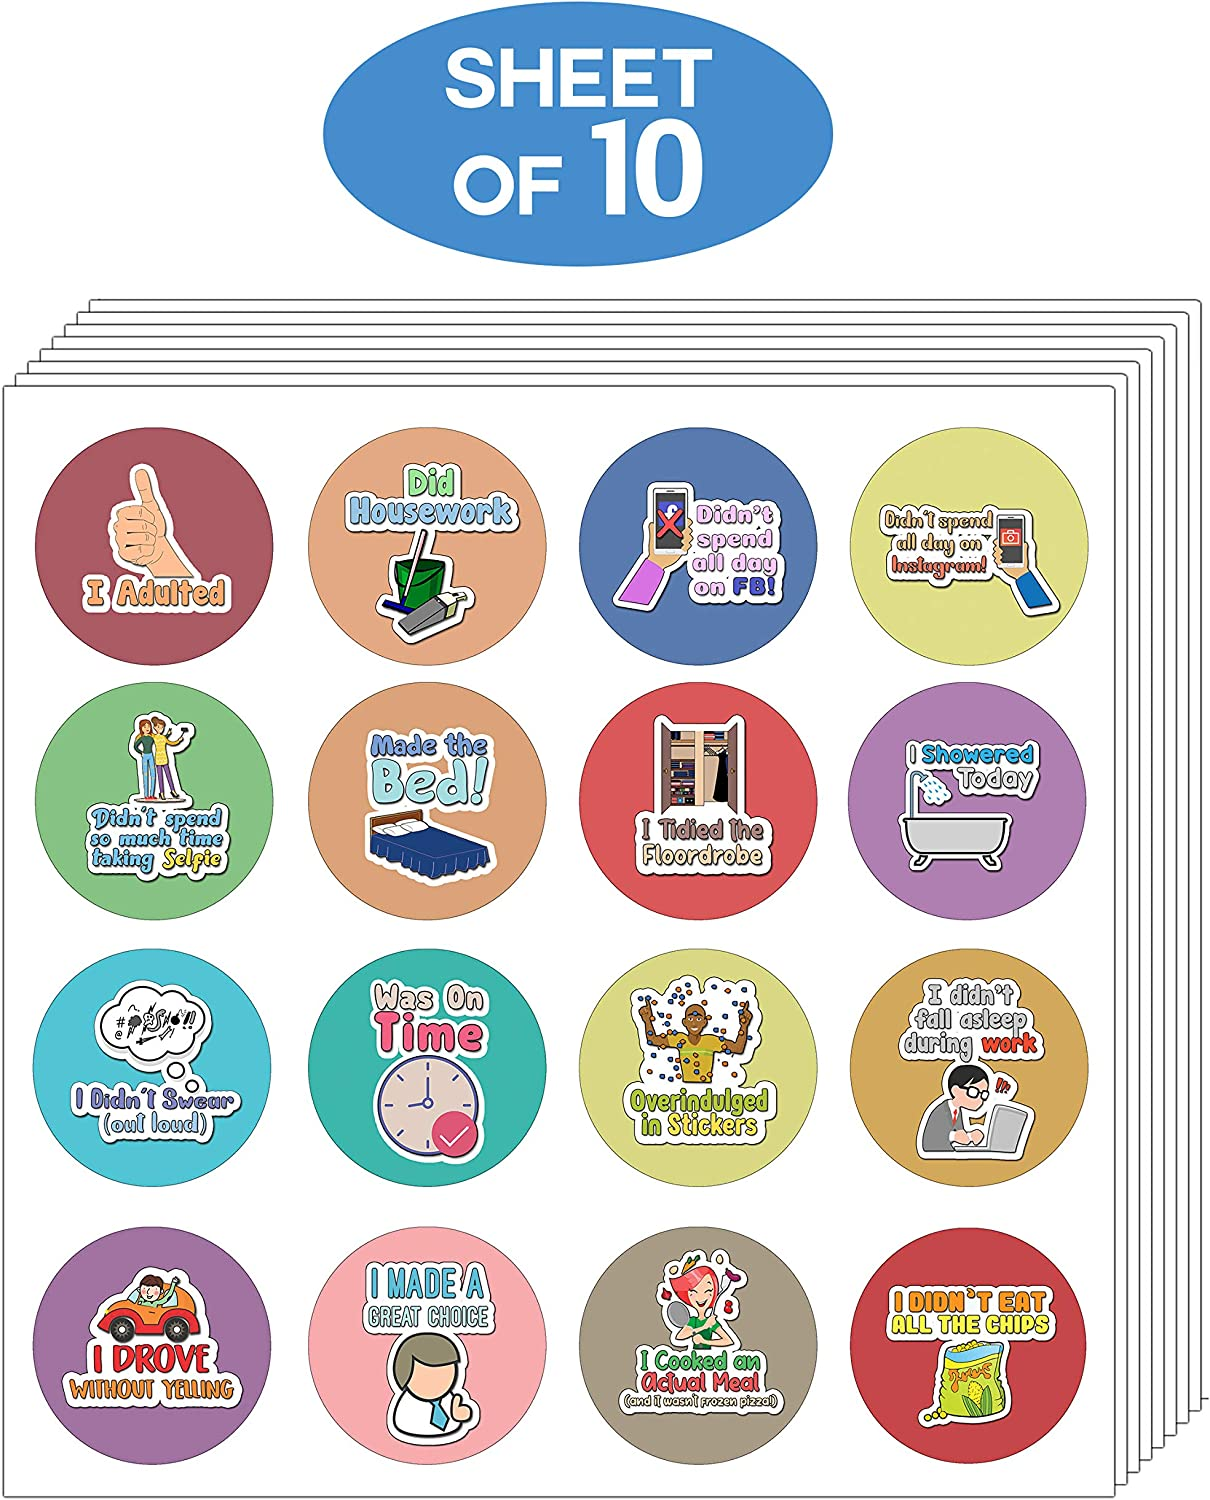 Creanoso Adulting Stickers for Women 10-Sheet Stocking Stuffers Party Favors /& Giveaways for Teens /& Adults Classroom Reward Incentives for Students - Assorted Designs for Females